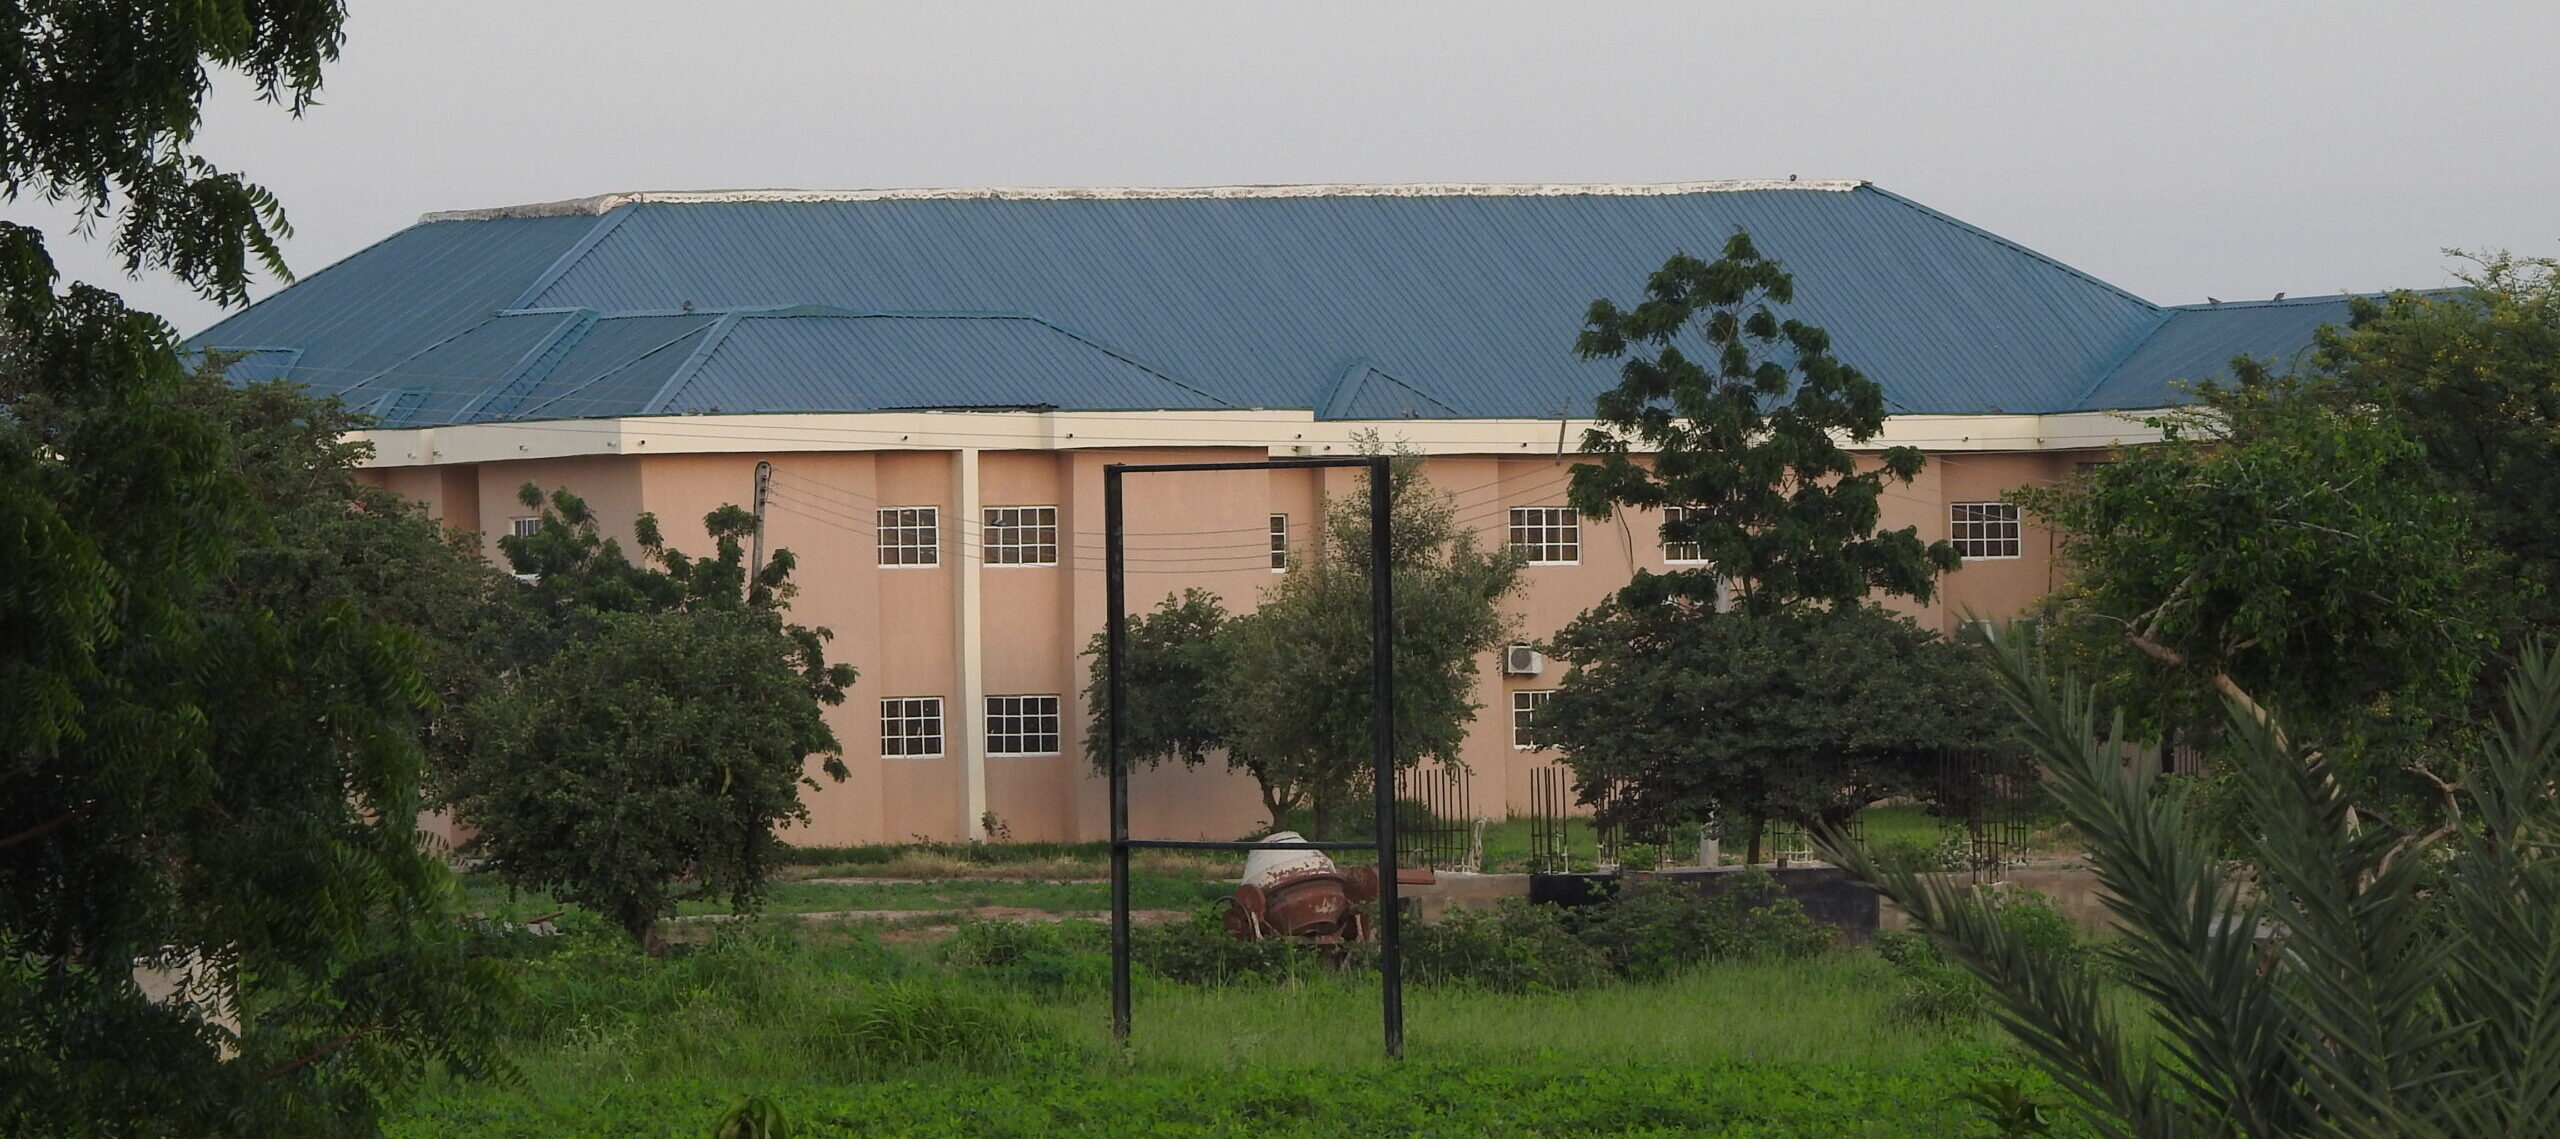 Faculty Building